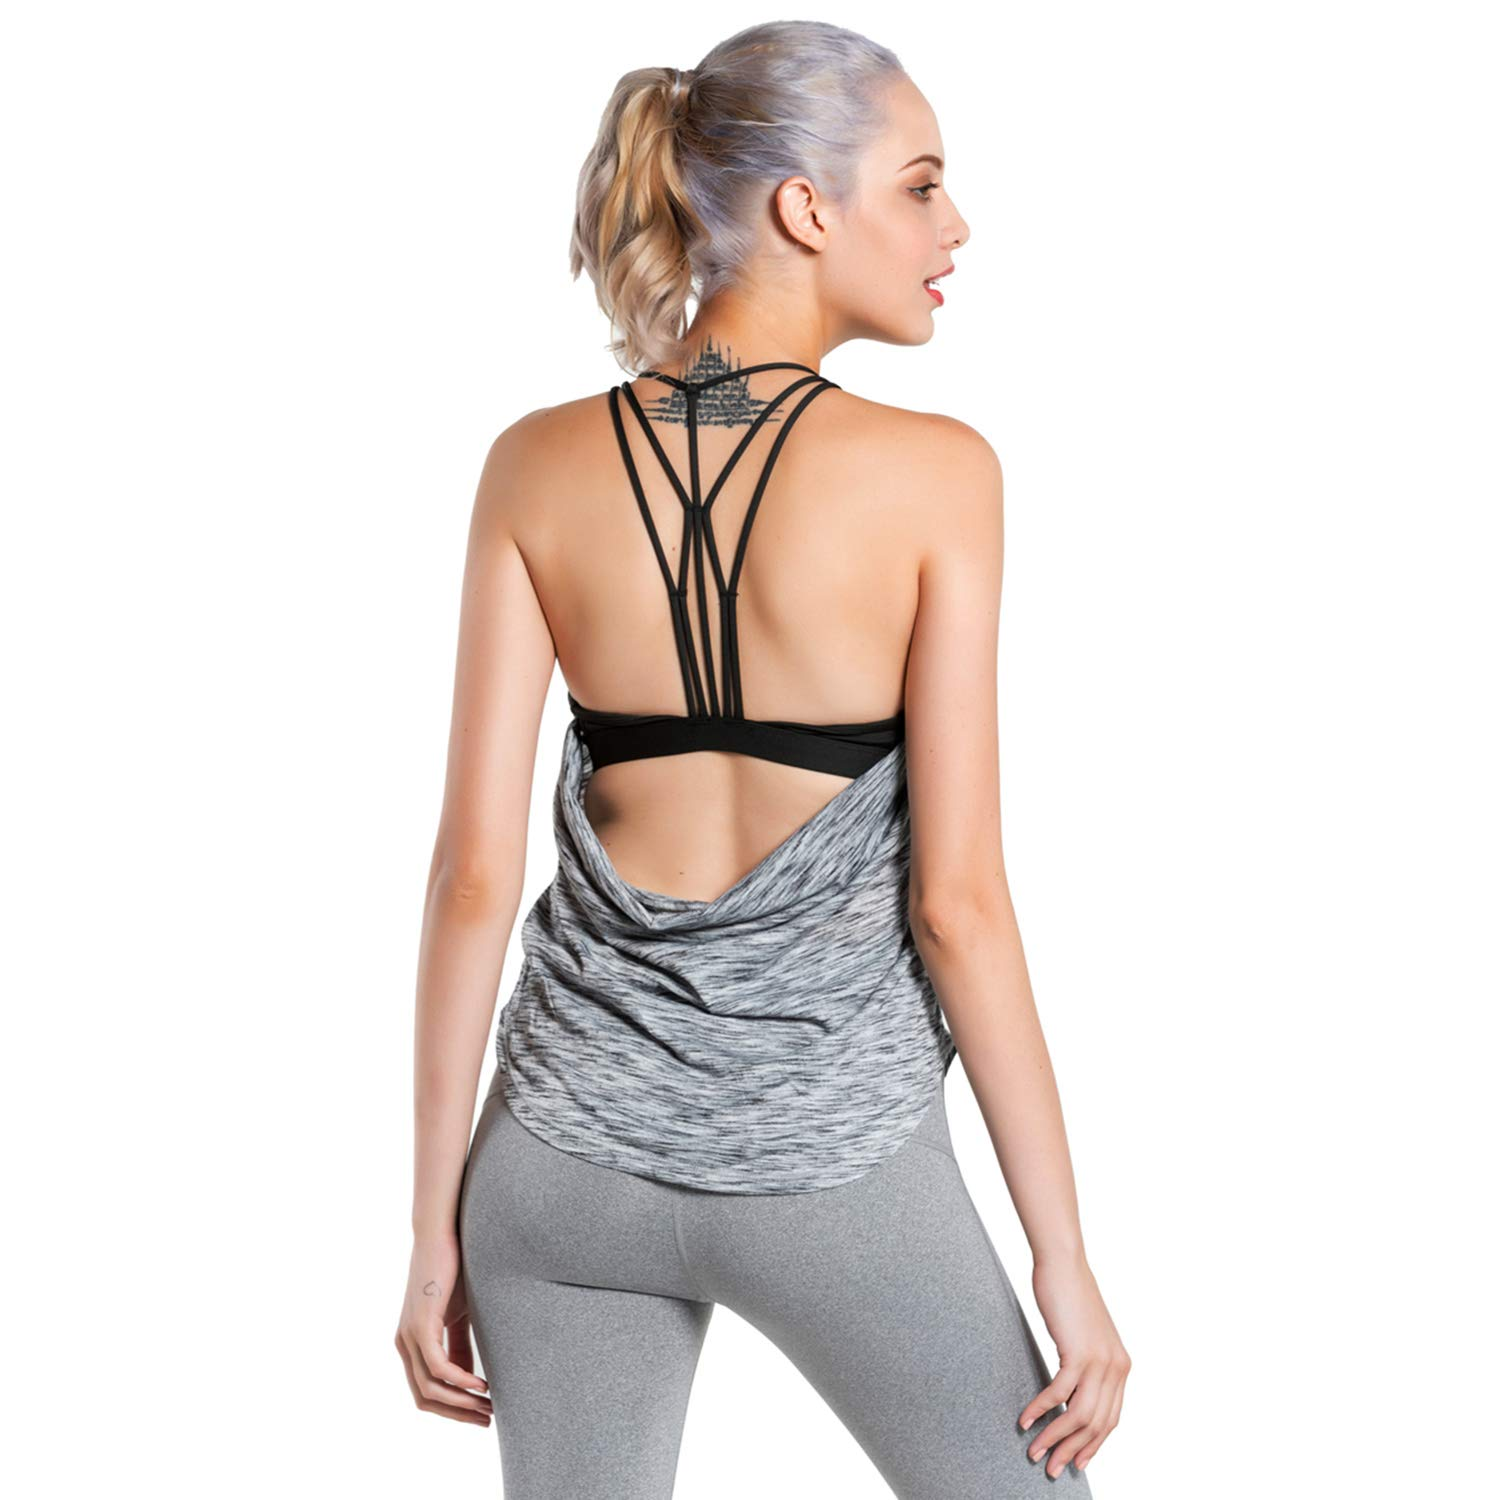 MTSCE Womens Padded Yoga Tops Cross Back 2 in 1 Tank Top Workout Clothes Yoga Bra